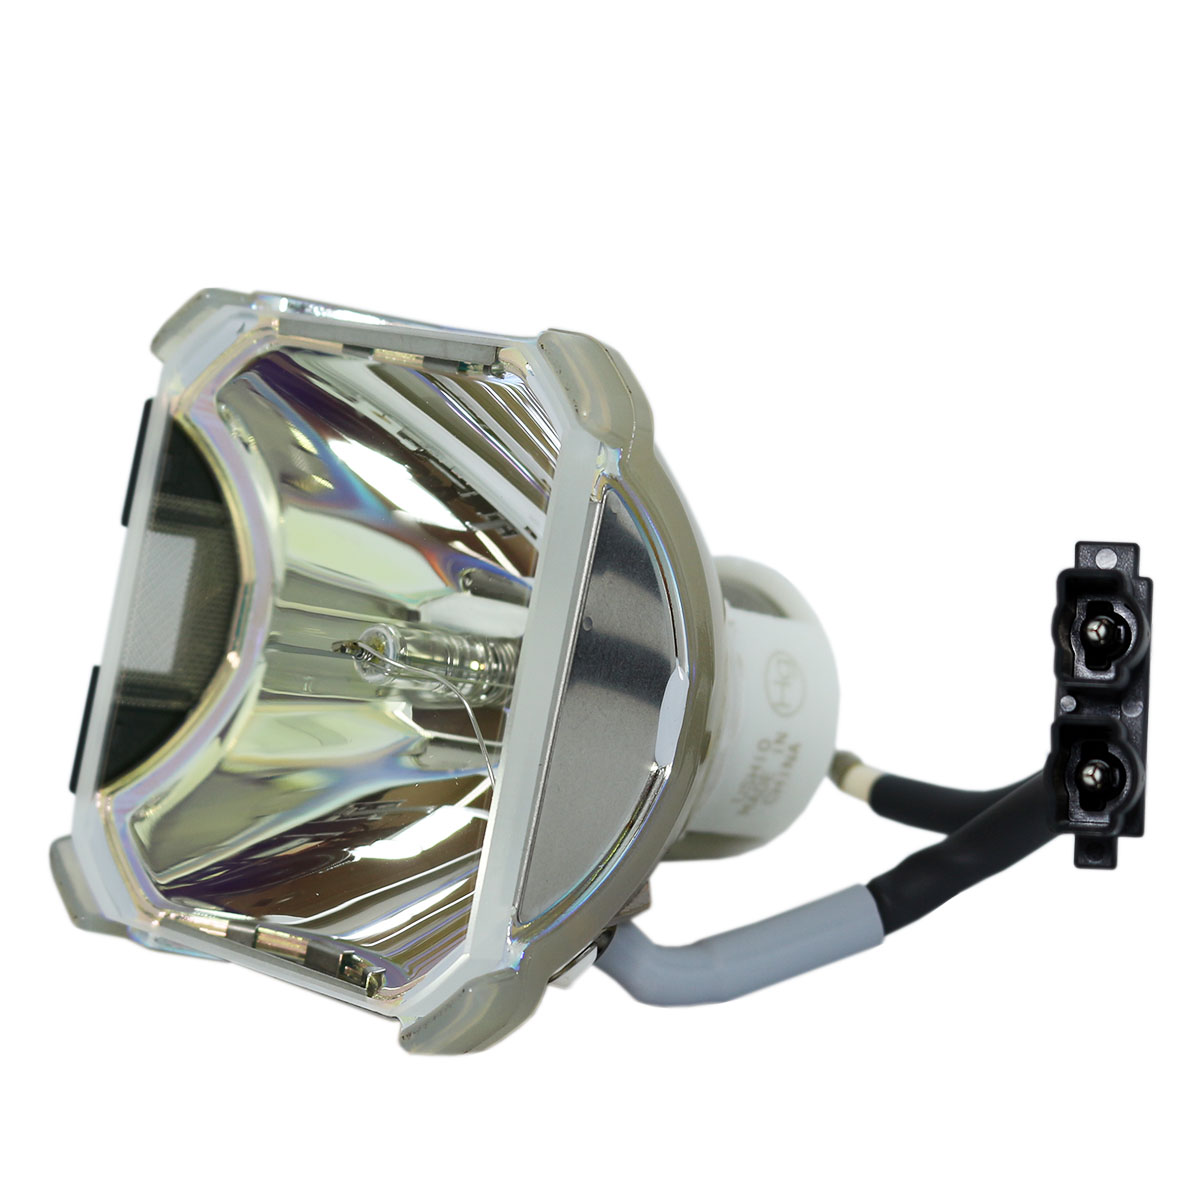 Compatible Bulb DT00471 DT-00471 for HITACHI CP-S420 CP-X430 CP-X430W MCX2500 Projector Lamp Bulb without housing free shipping free shipping compatible projector lamp for hitachi cp x3